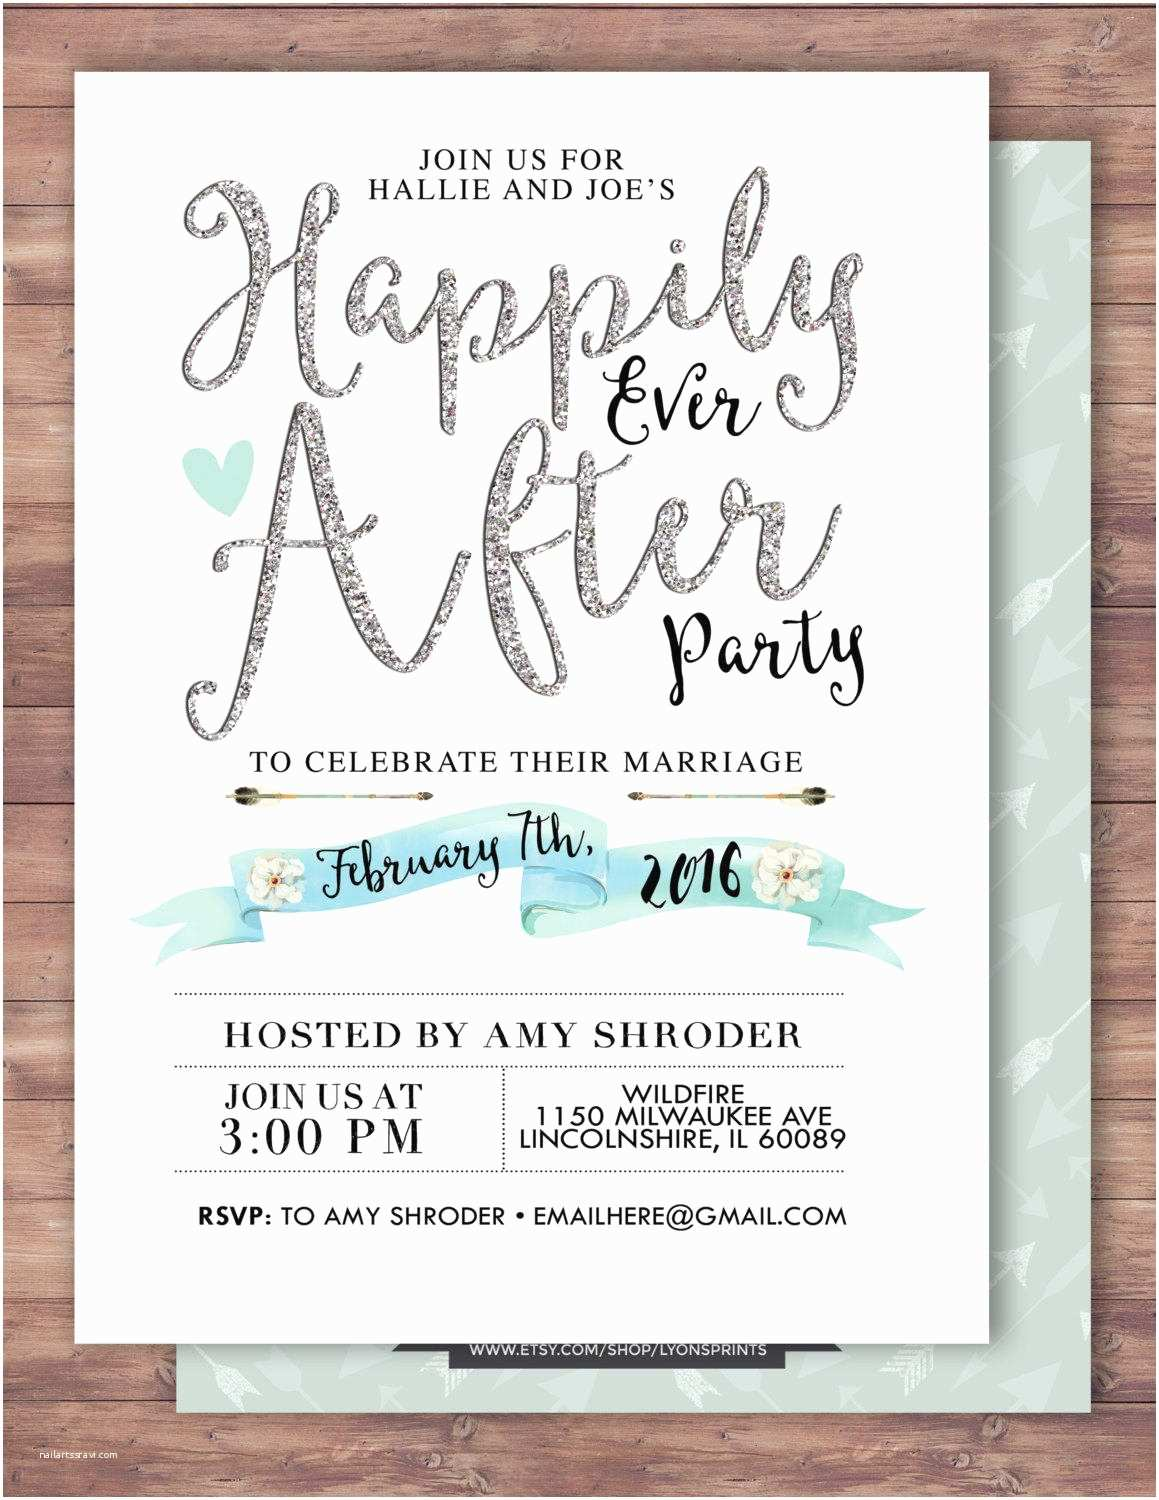 Happily Ever after Wedding Invitations Happily Ever after Invitation Boho Wedding Shower